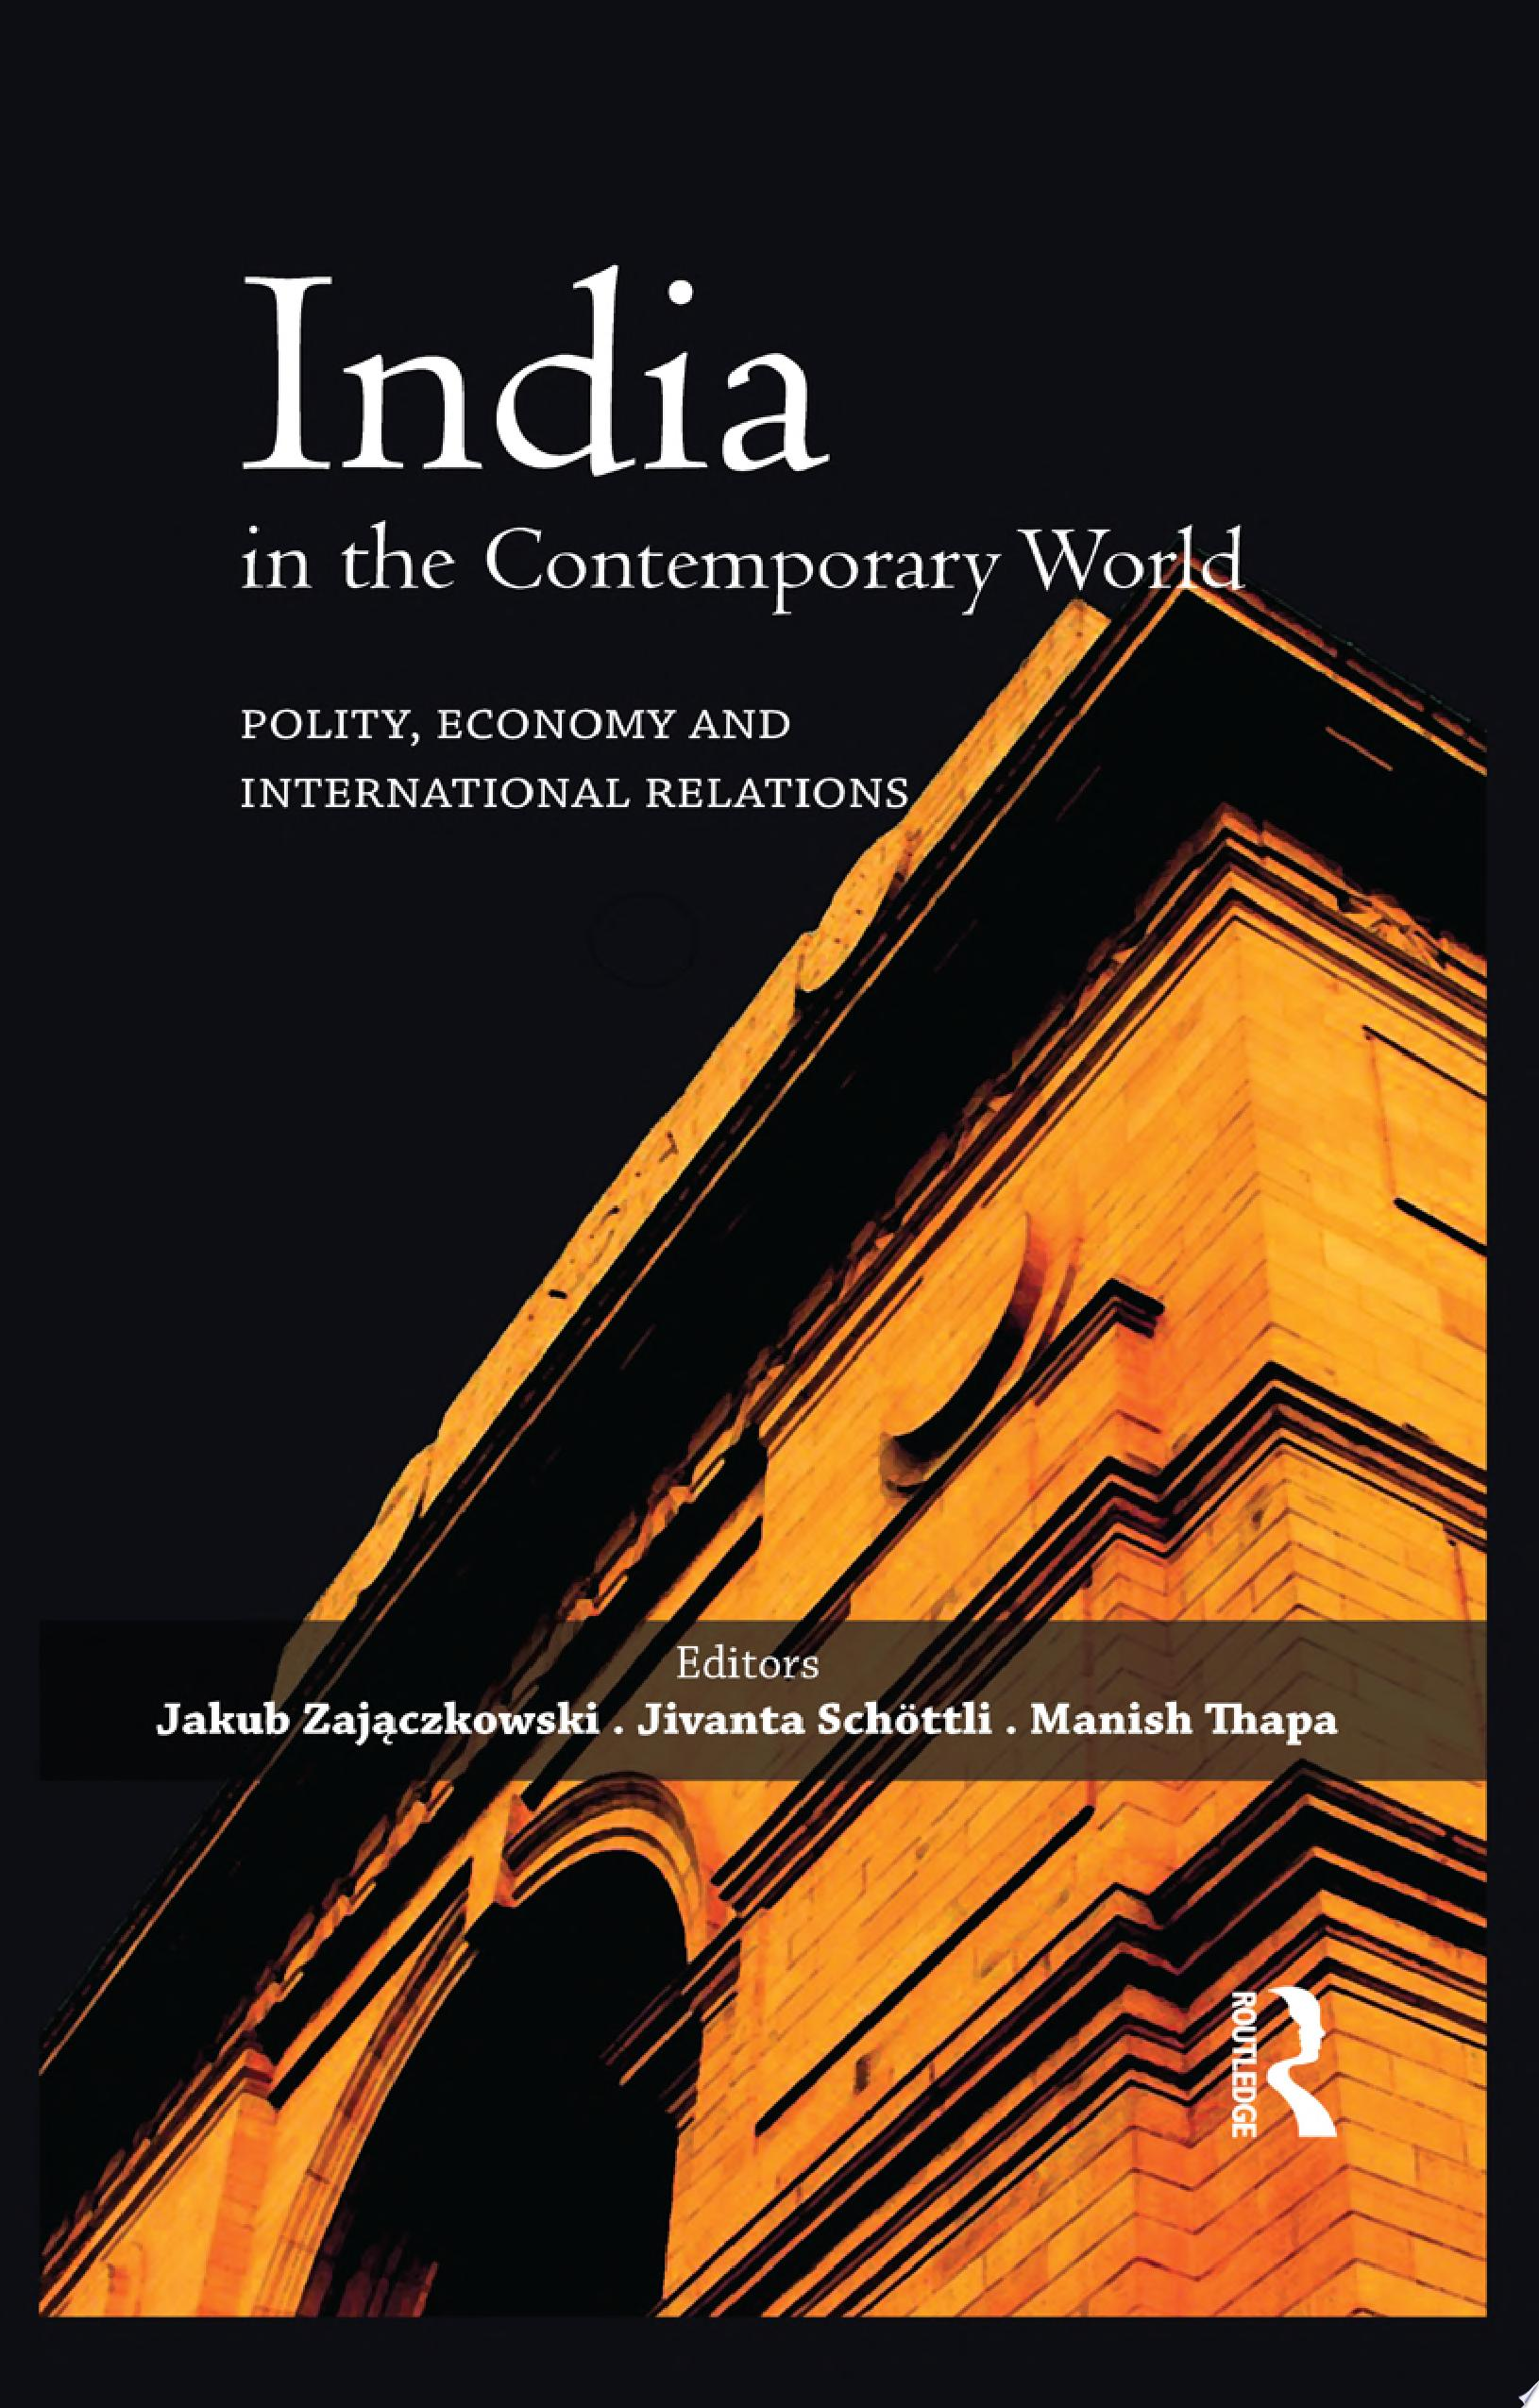 India in the Contemporary World